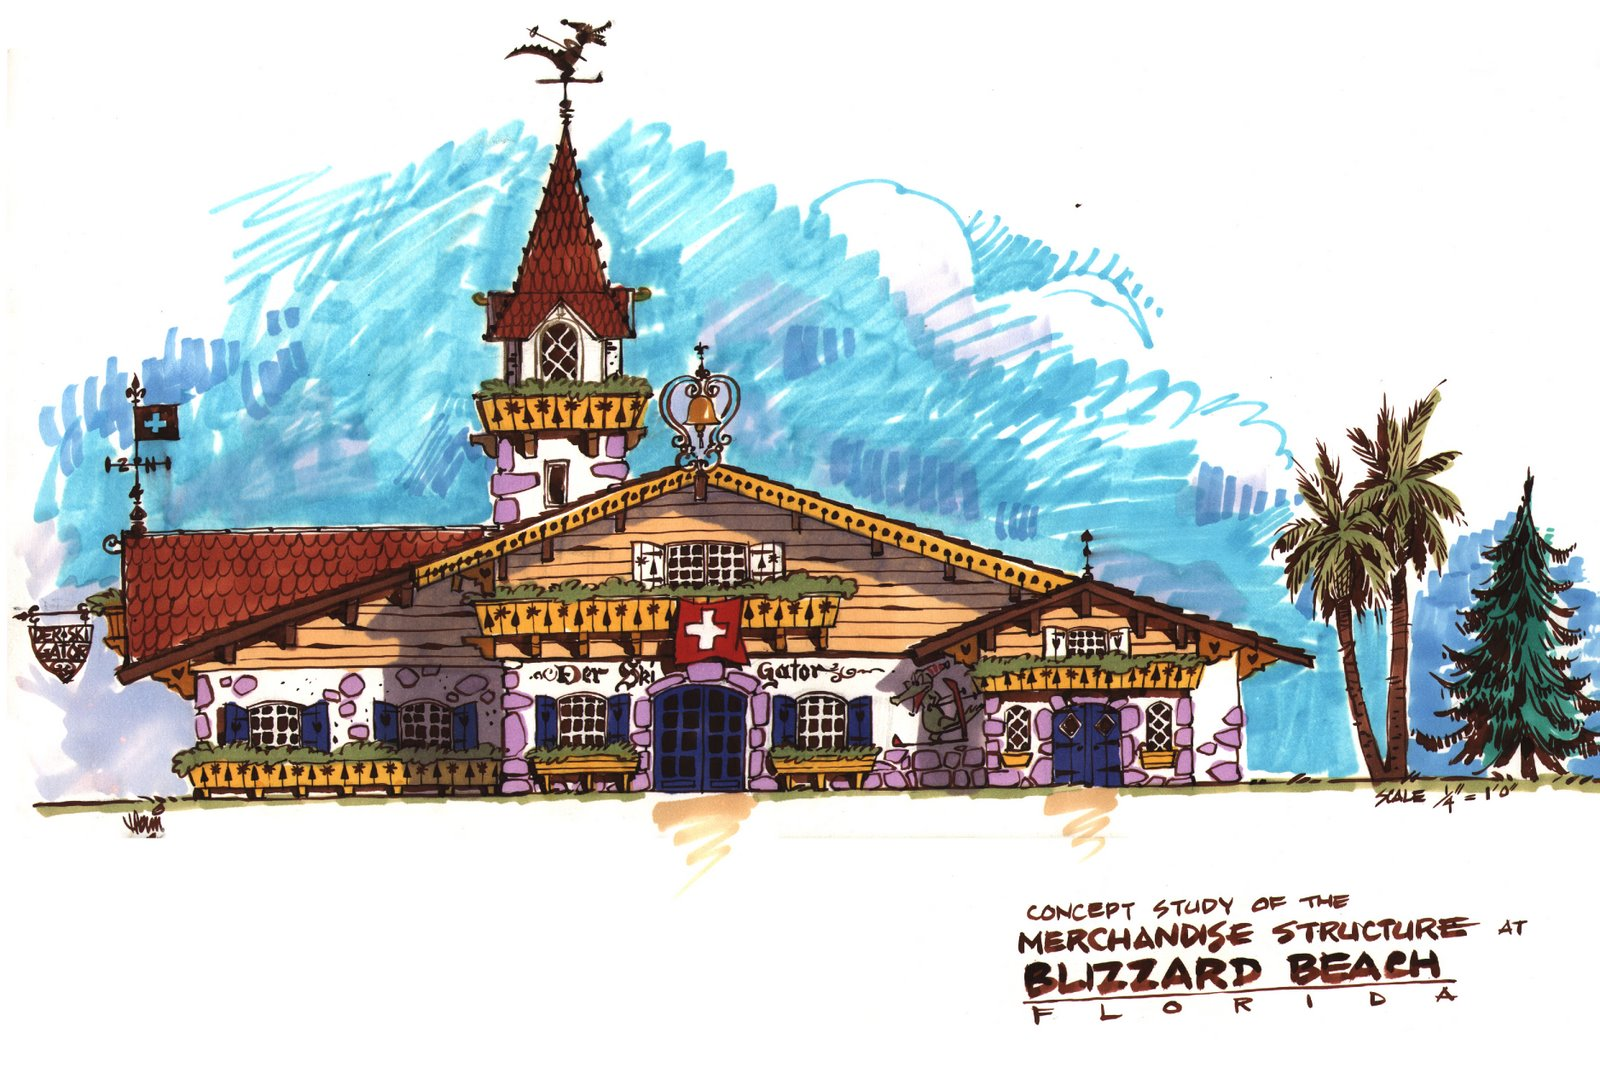 Concept for the Blizzard Beach at Florida's Disney World Resort